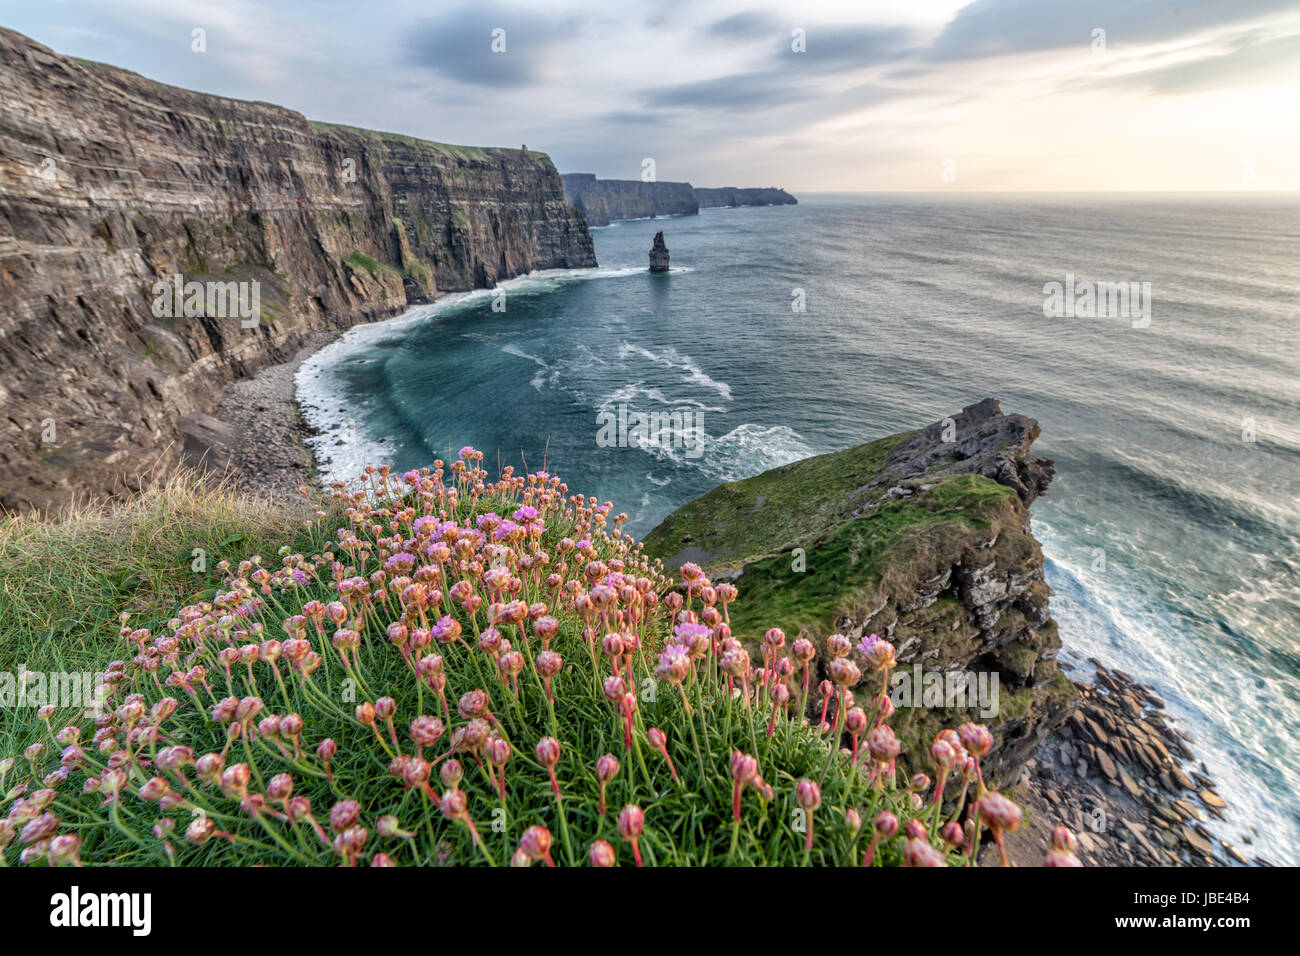 cliffs of moher with some flowers in the foreground - Stock Image